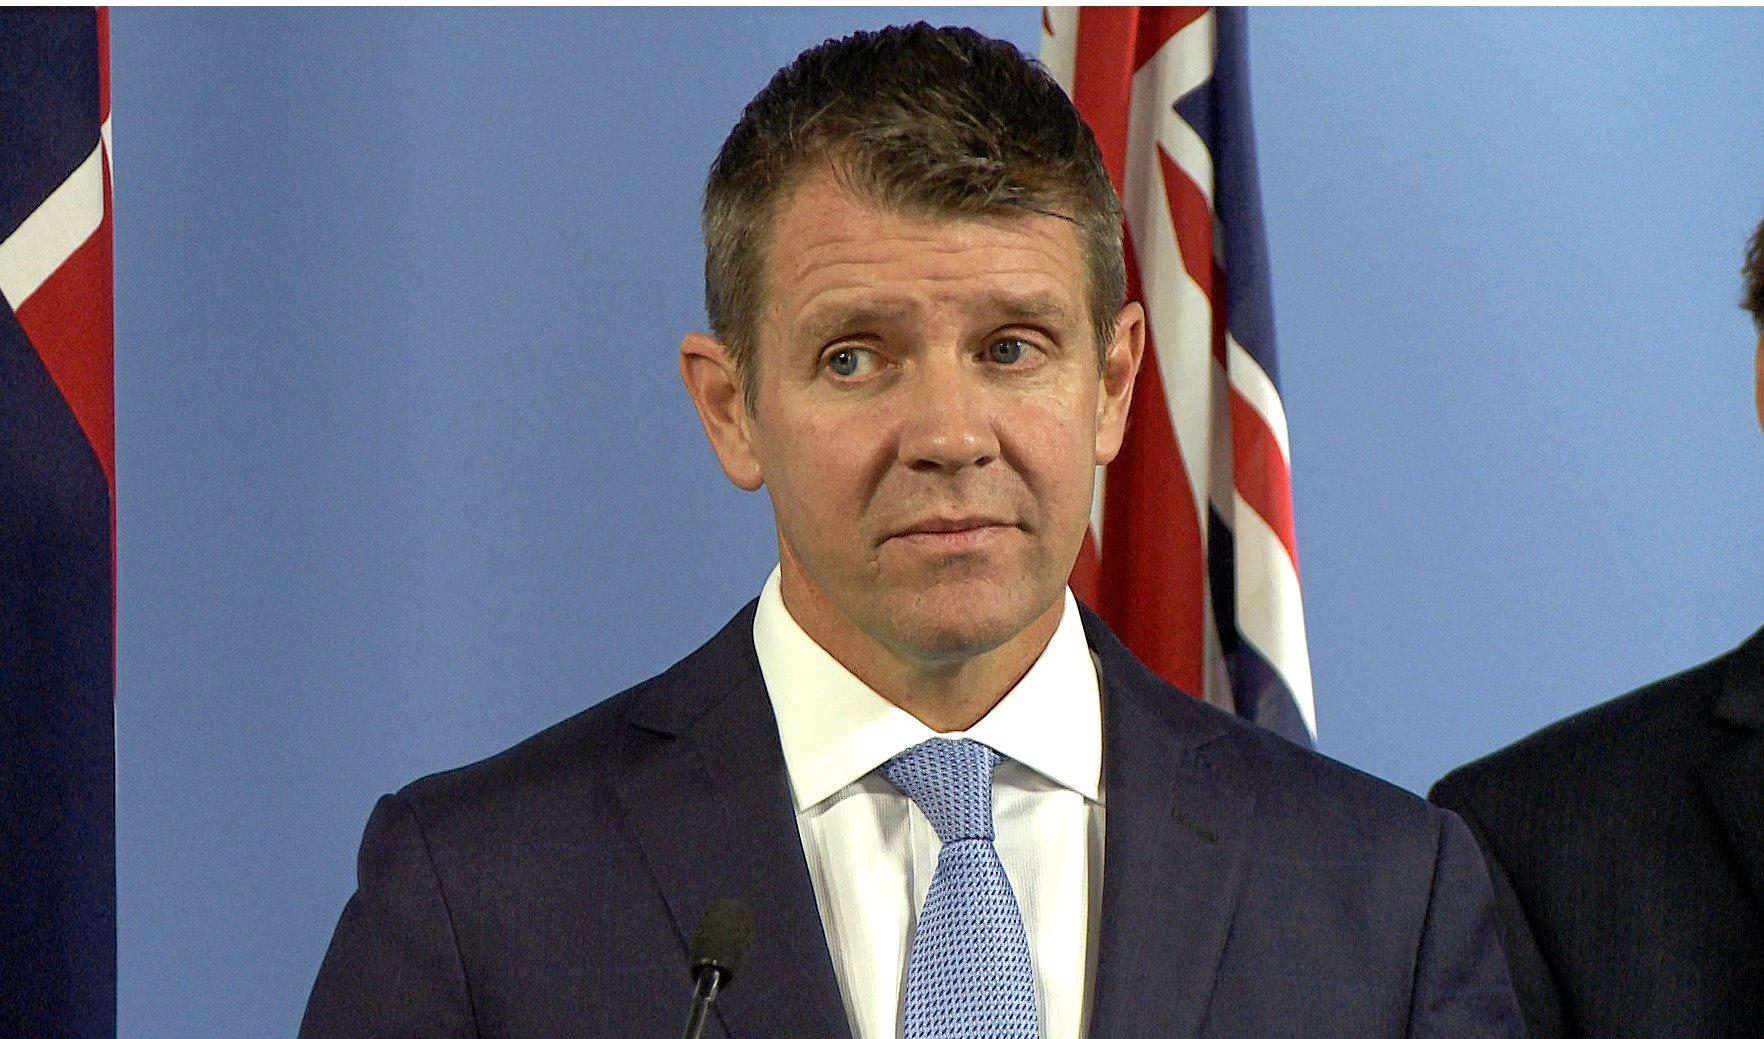 NSW Premier Mike Baird speaks during a press conference in Sydney, Thursday, July 7, 2106.  The NSW government will move legislation to close down the state's greyhound racing industry. The ban would be effective as of 1 July 2017. (AAP Image/Andi Yu) NO ARCHVIING